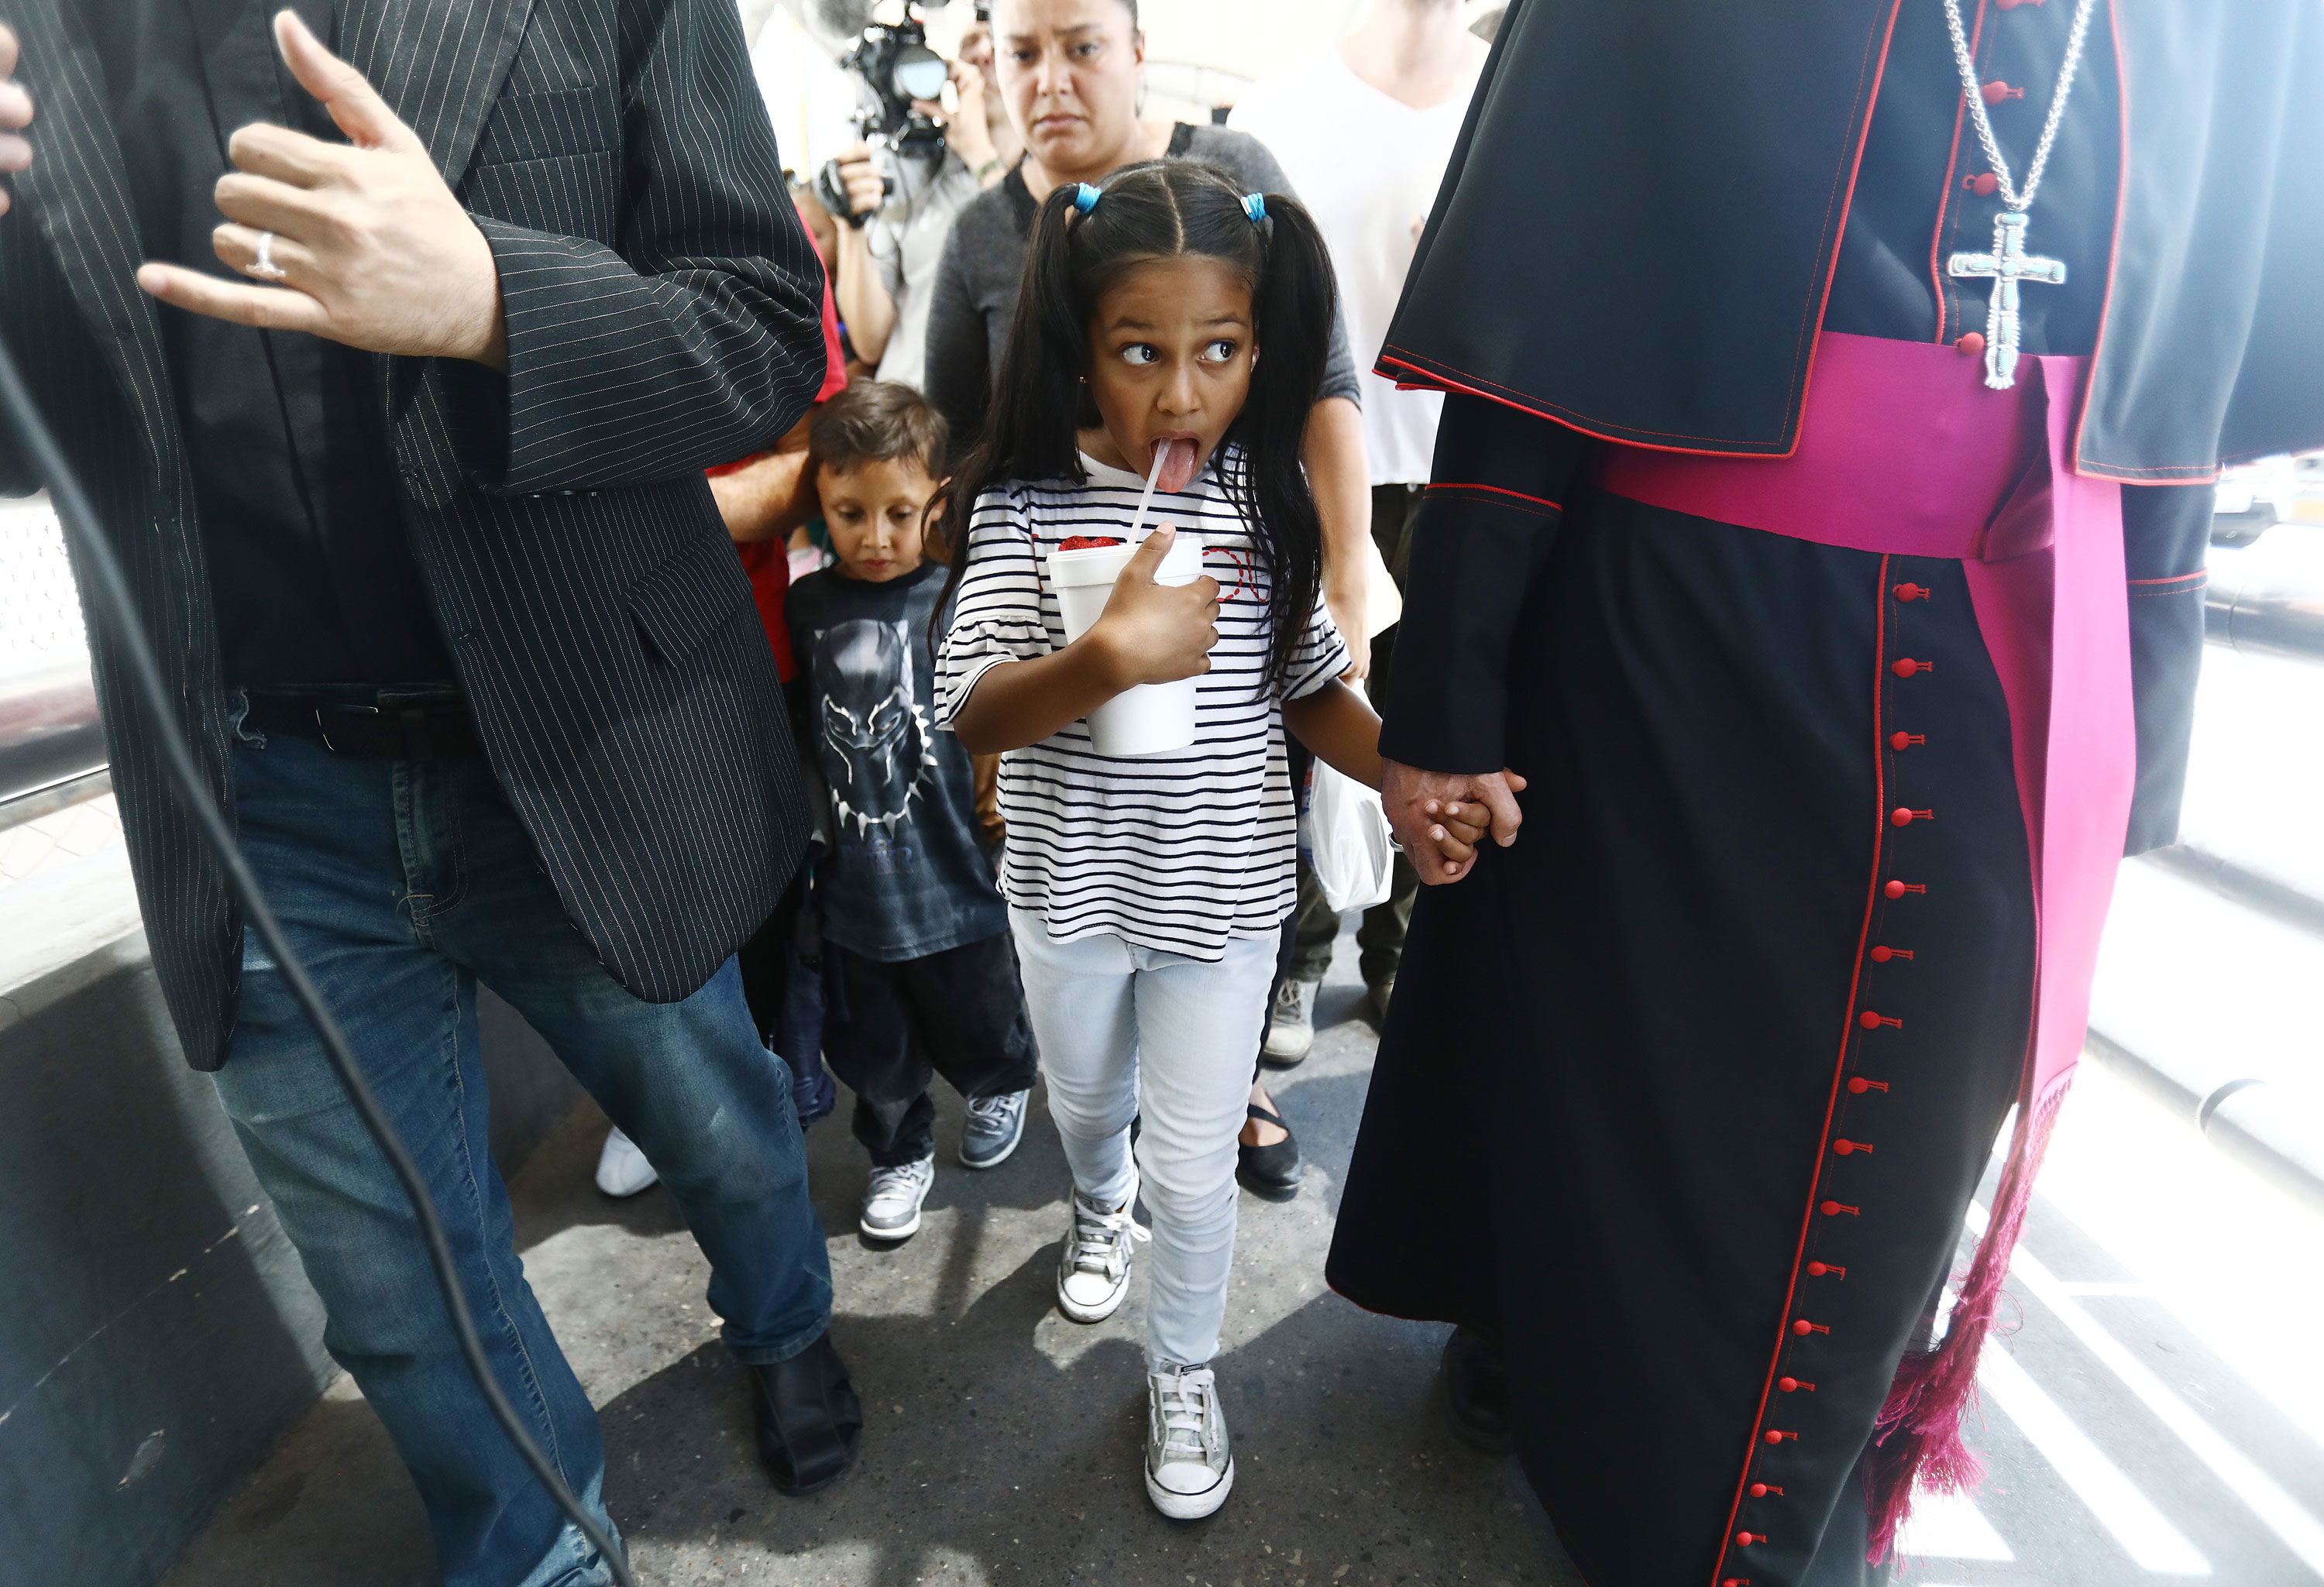 El Paso Bishop Mark Seitz (R) escorts Celsia Palma (C), 9, from Honduras, as they cross the Paso Del Norte Port of Entry bridge towards the U.S. on June 27, 2019, in Ciudad Juarez, Mexico. Seitz escorted Celsia and other family members across the port of entry to be processed by U.S. immigration authorities. Earlier, Seitz and clergy from the Diocese of Ciudad Juarez held a prayer with migrants who were recently returned to Ciudad Juarez from El Paso because of the controversial 'Remain in Mexico' policy.